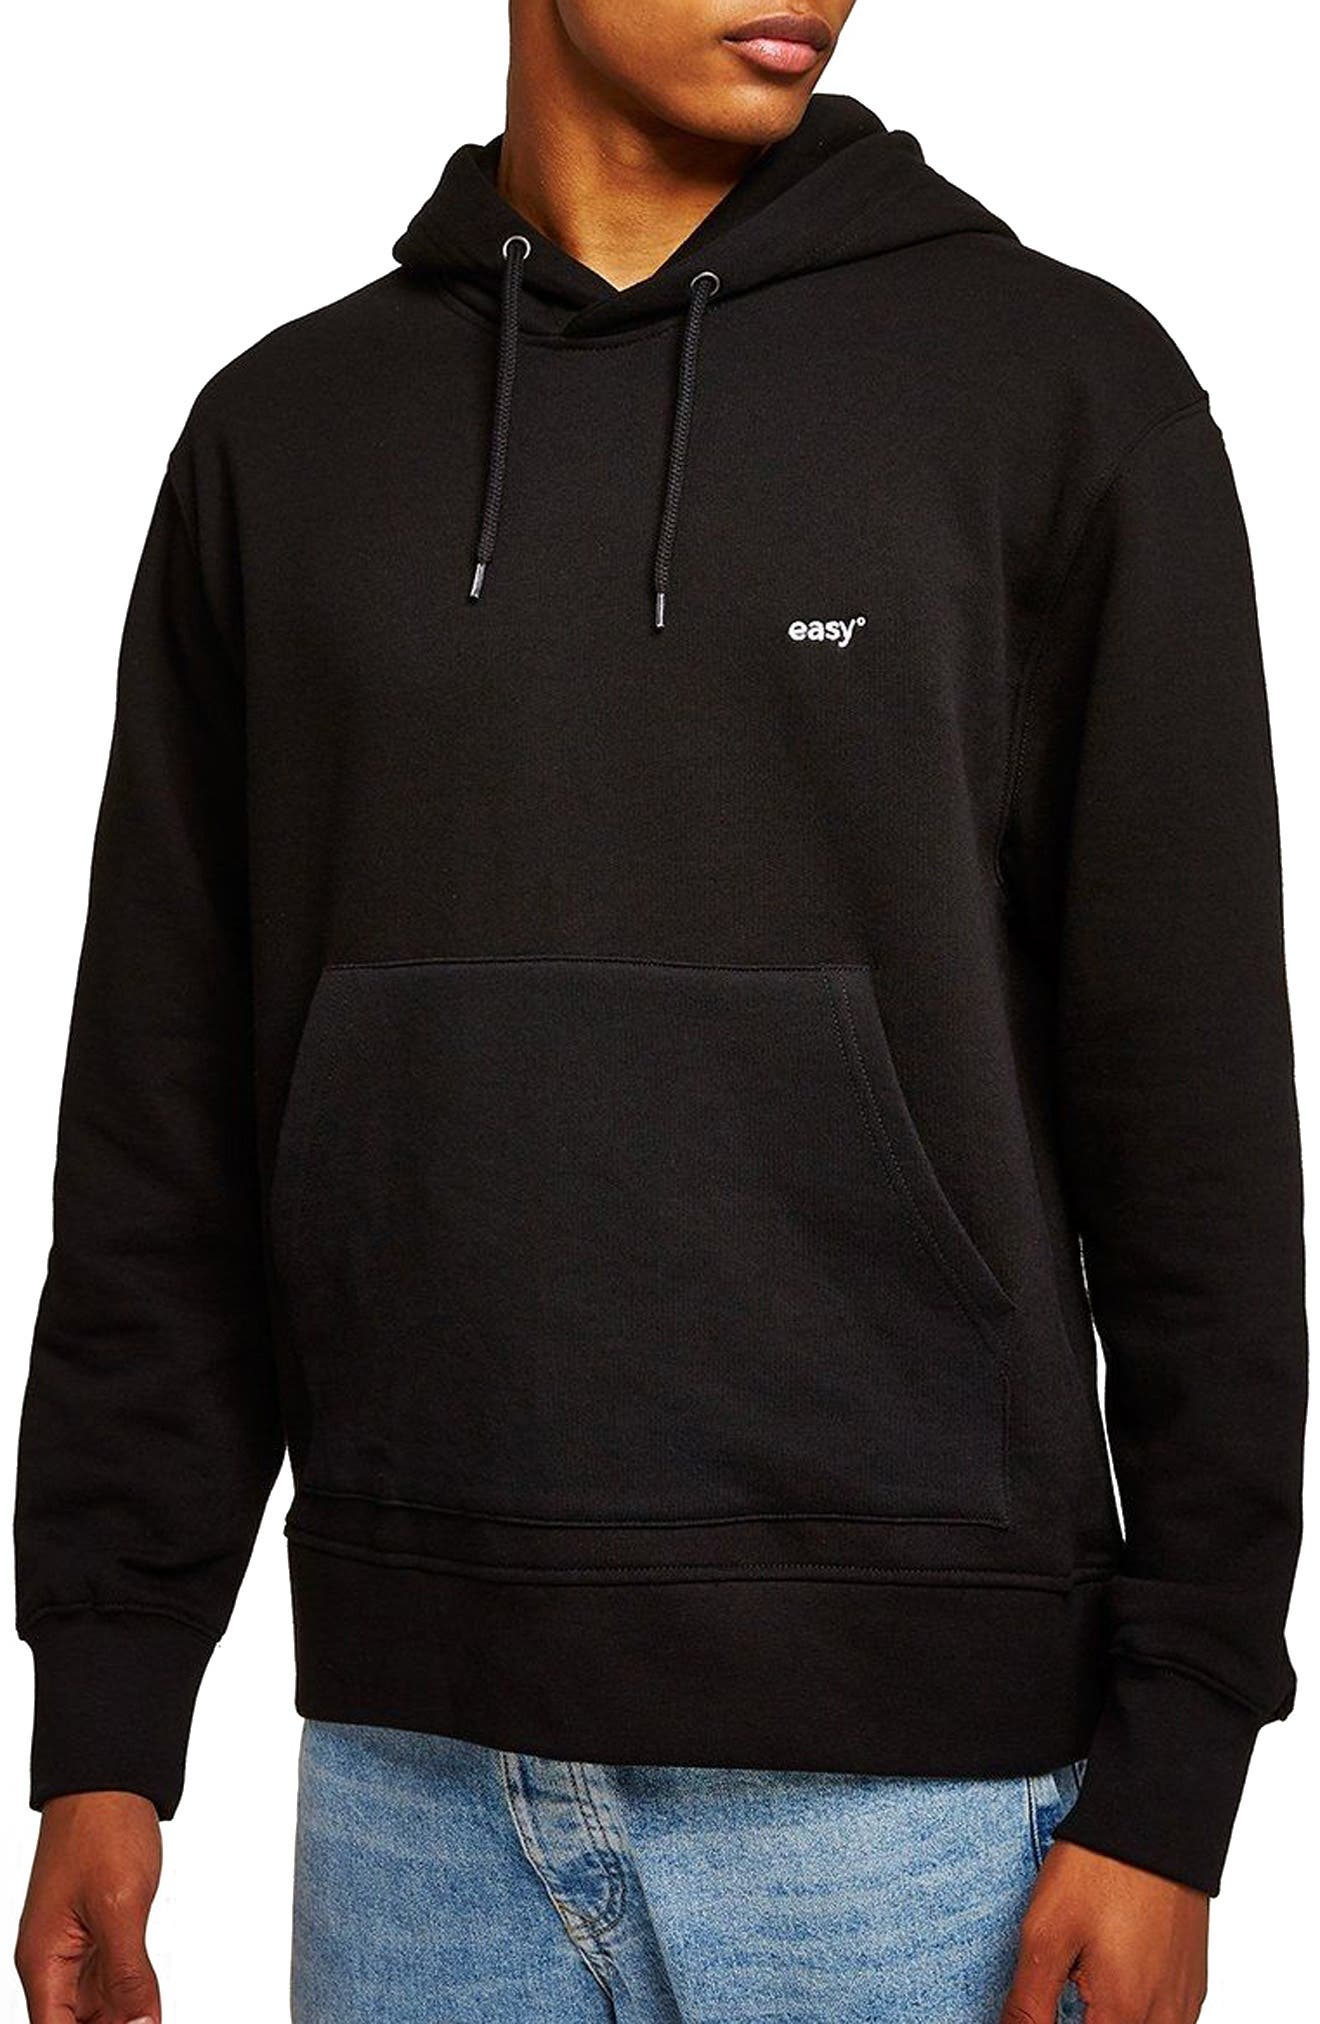 Classic Fit Tristan Easy Embroidered Hoodie,                             Main thumbnail 1, color,                             Black Multi